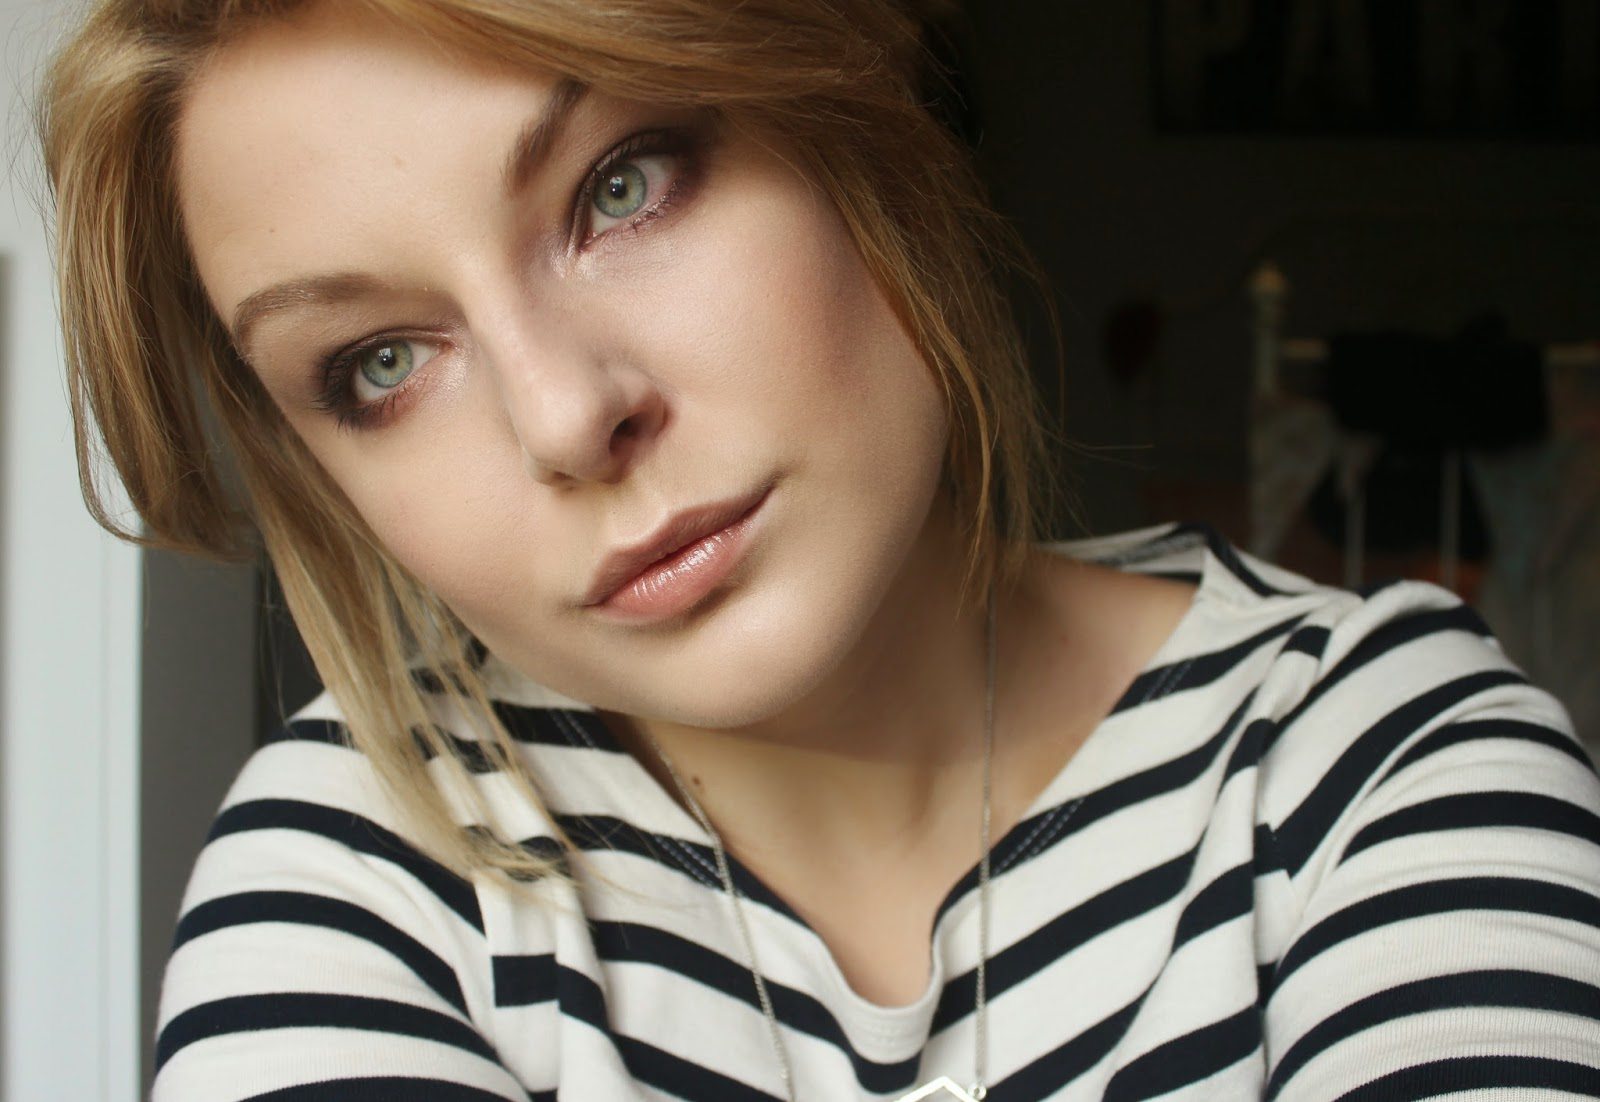 ASHLEY OLSEN INSPIRED MAKEUP FEATURING BENEFIT THEY'RE REAL MASCARA